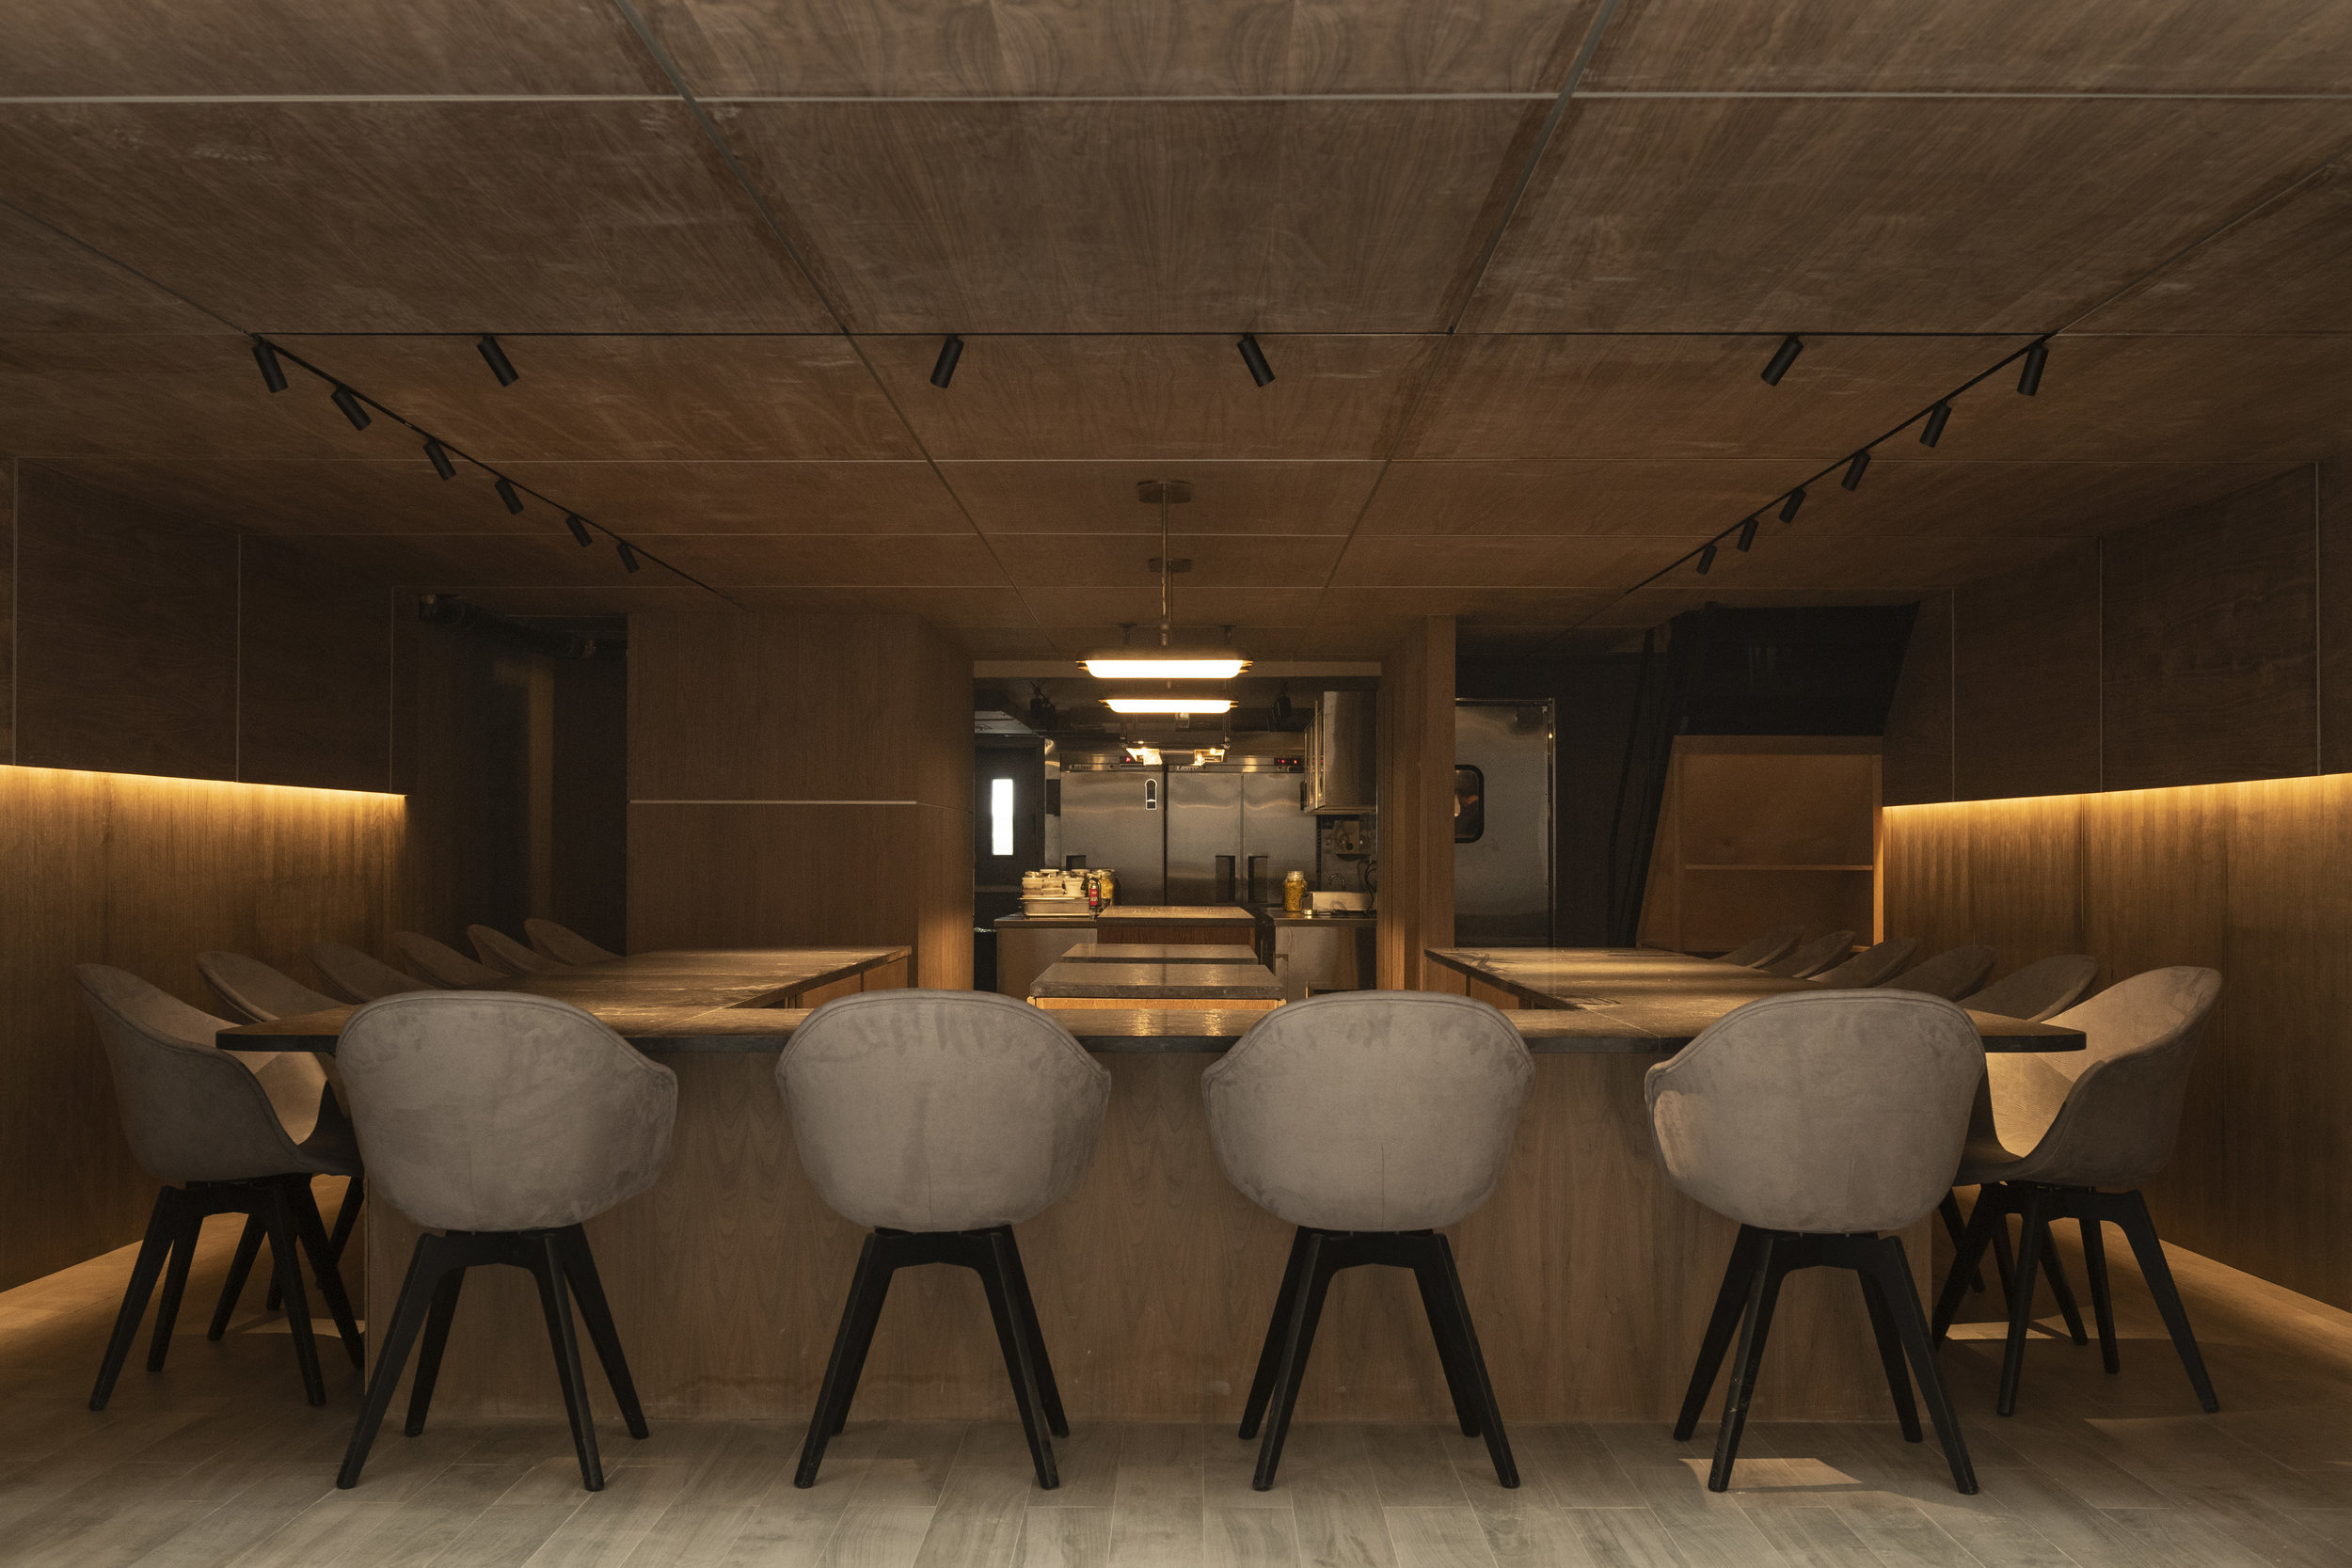 Atomix_Dining Room_Photo Credit Evan Sung.jpg